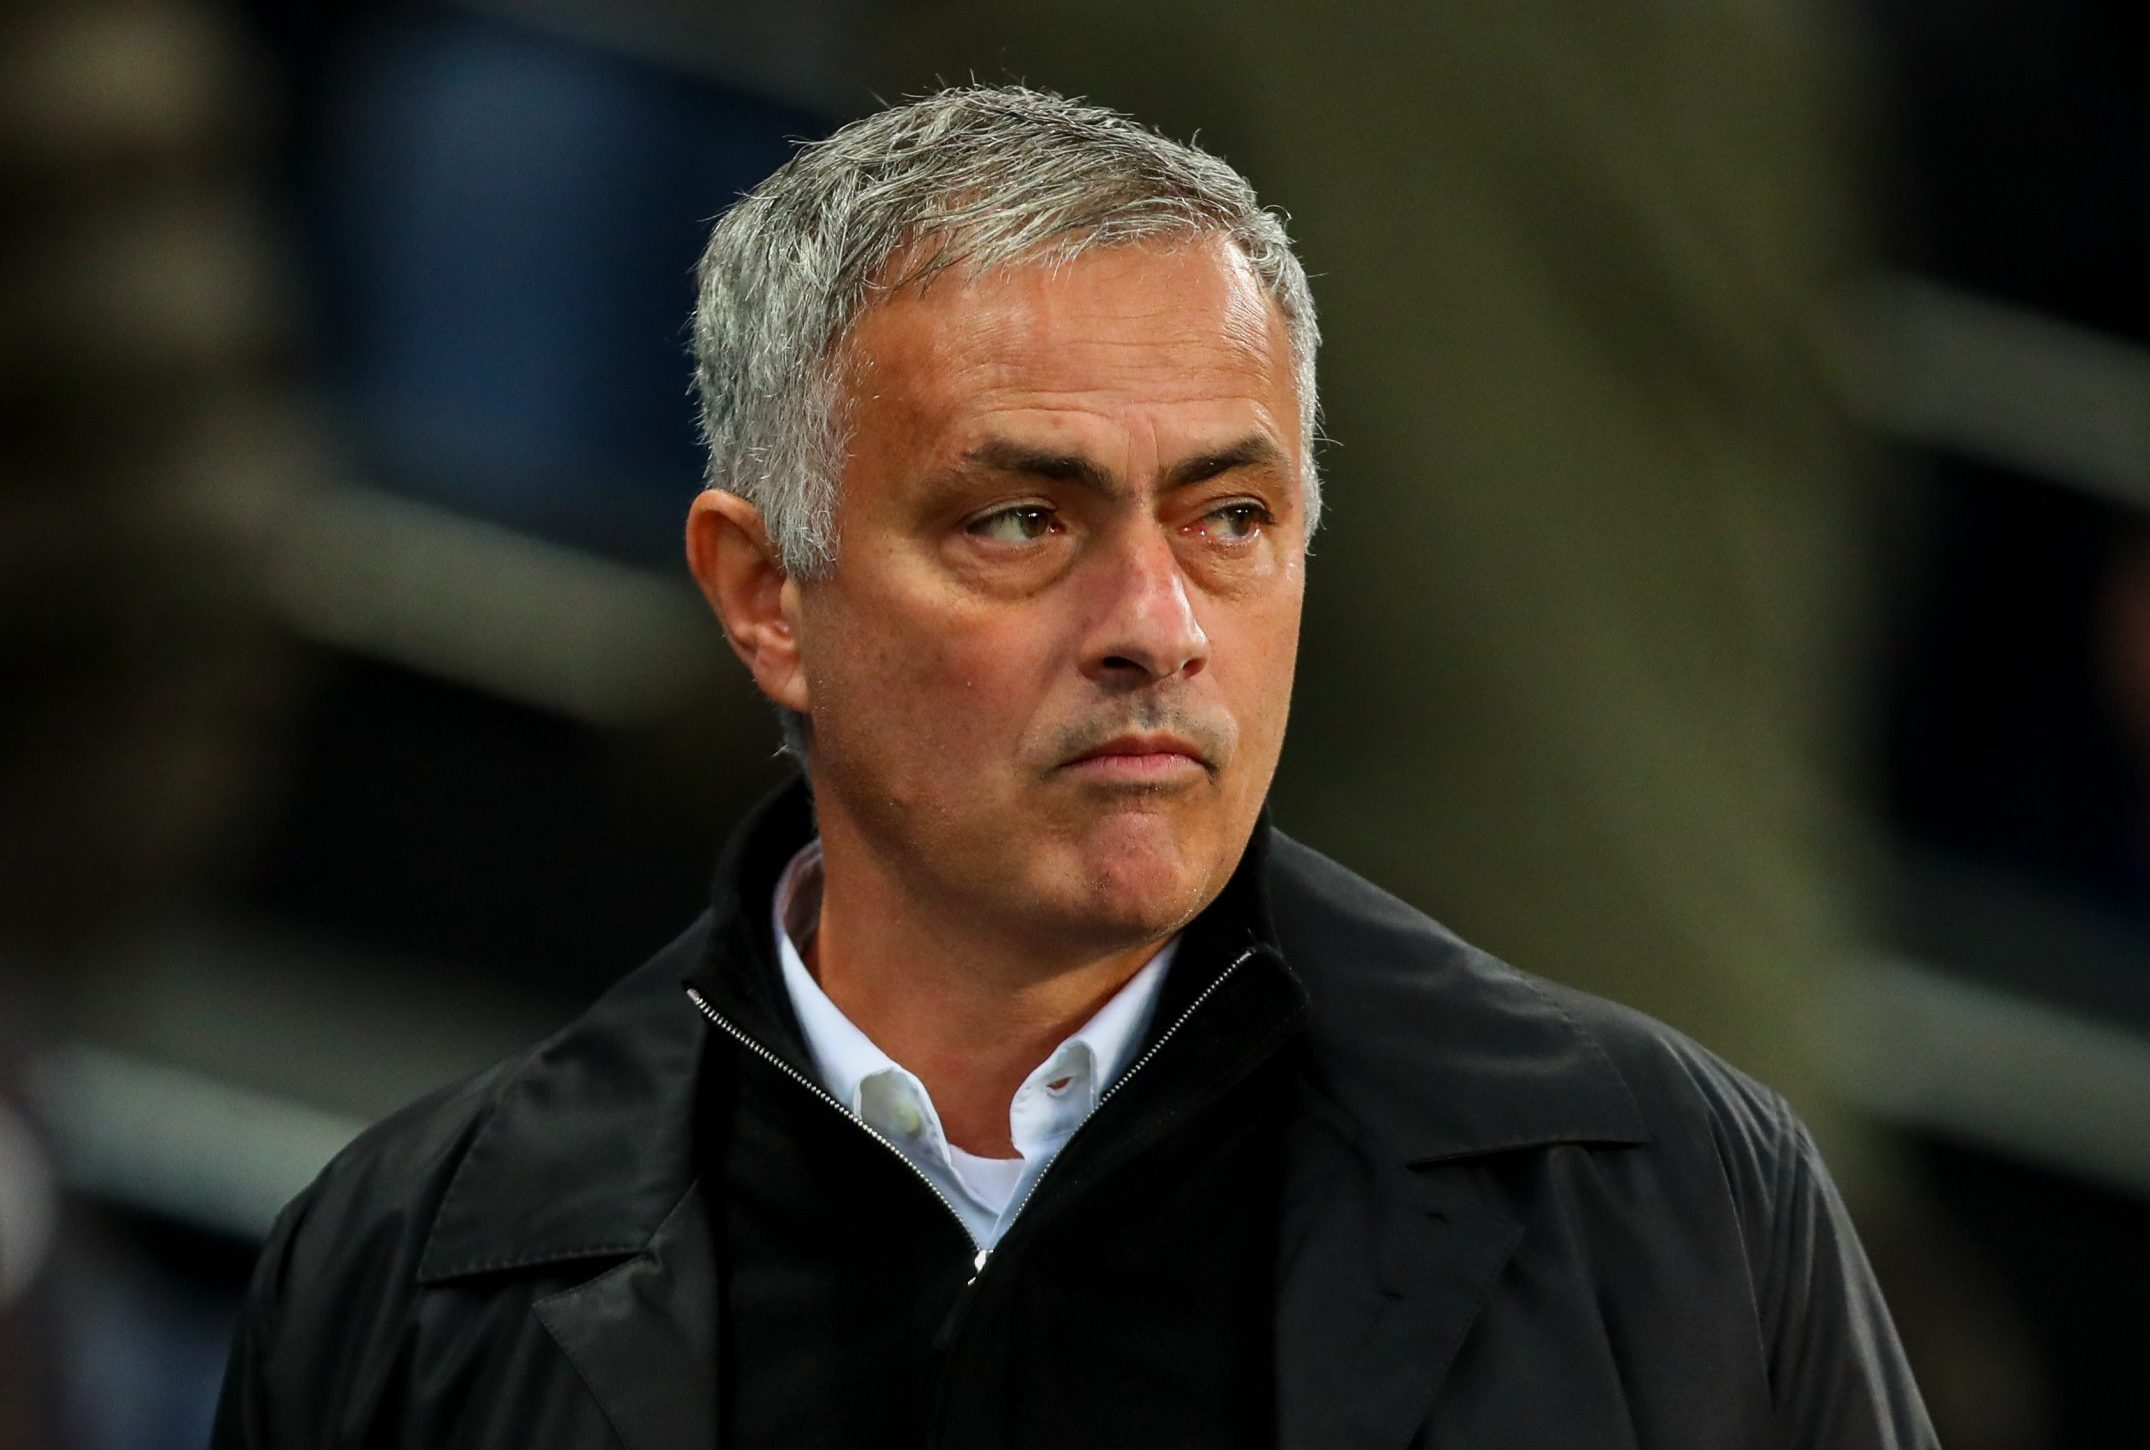 MANCHESTER, ENGLAND - NOVEMBER 11: Jose Mourinho the head coach / manager of Manchester United during the Premier League match between Manchester City and Manchester United at Etihad Stadium on November 11, 2018 in Manchester, United Kingdom. (Photo by Robbie Jay Barratt - AMA/Getty Images)